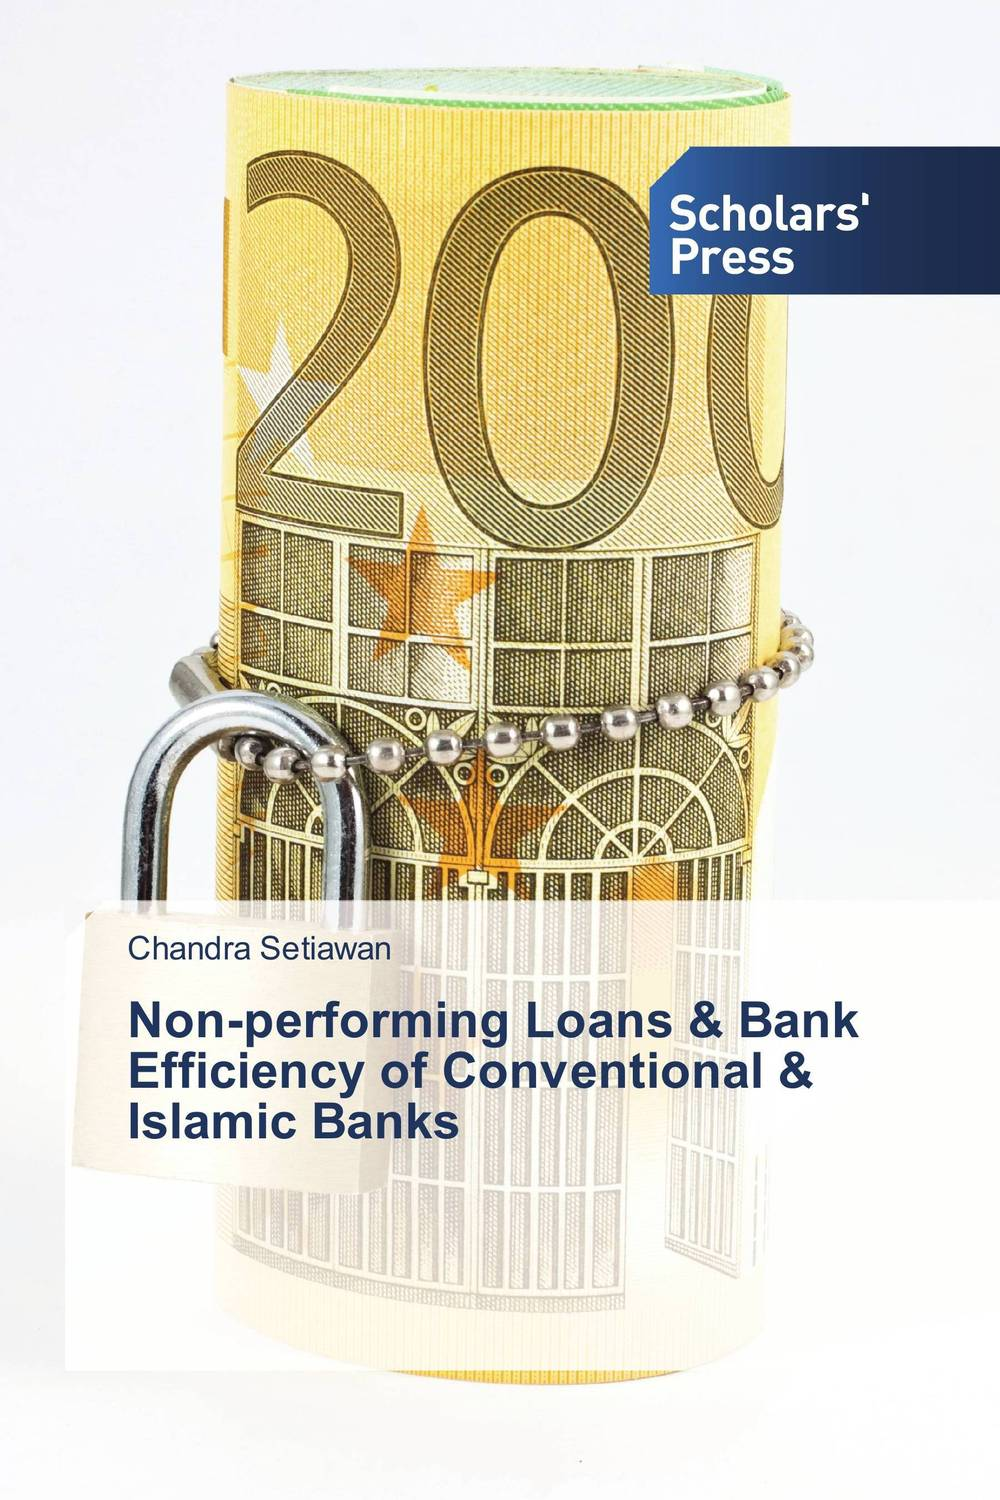 Non-performing Loans & Bank Efficiency of Conventional & Islamic Banks economic efficiency and profitability of islamic bank